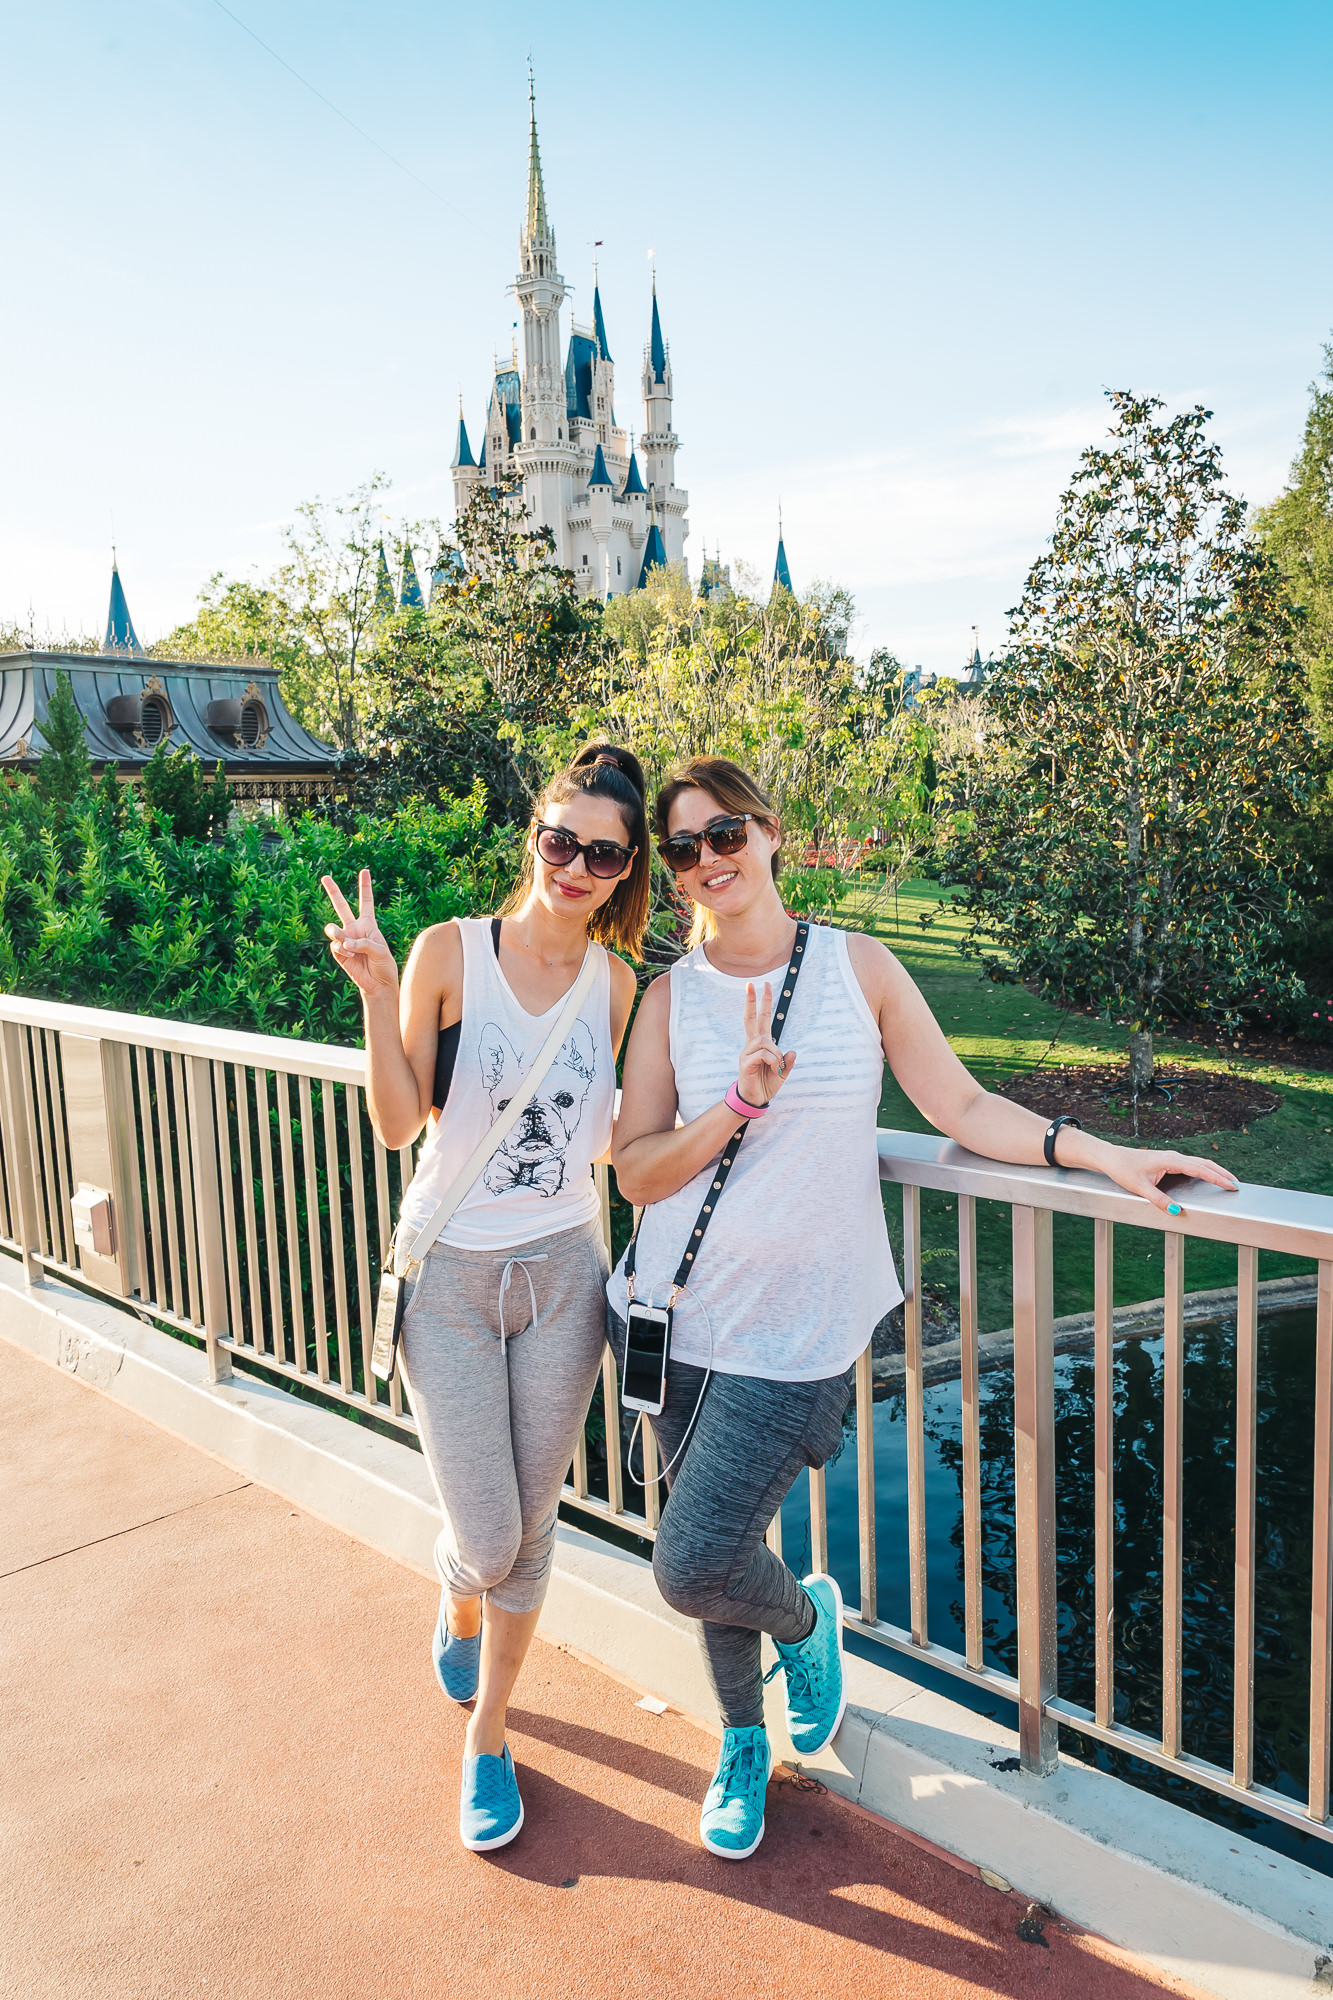 Tip: Have the Disney Photographers take pictures for you with your camera.